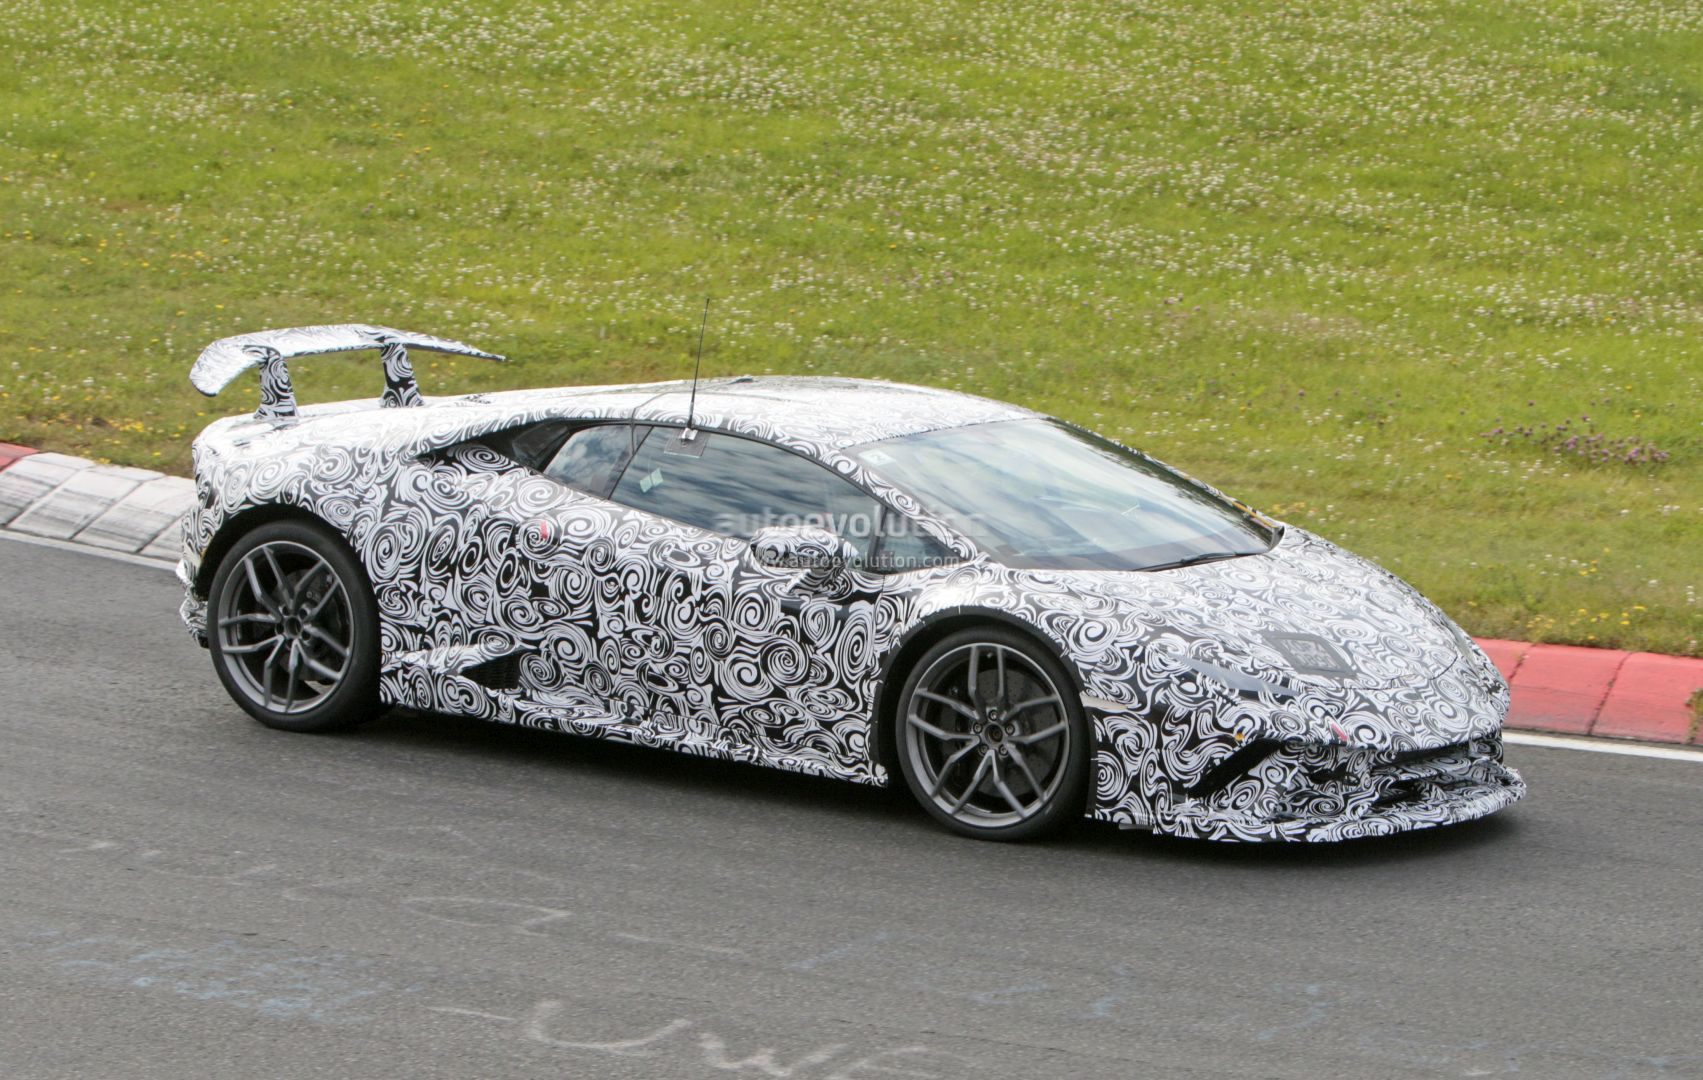 Lamborghini Huracan Superleggera Sounds Insane In Video